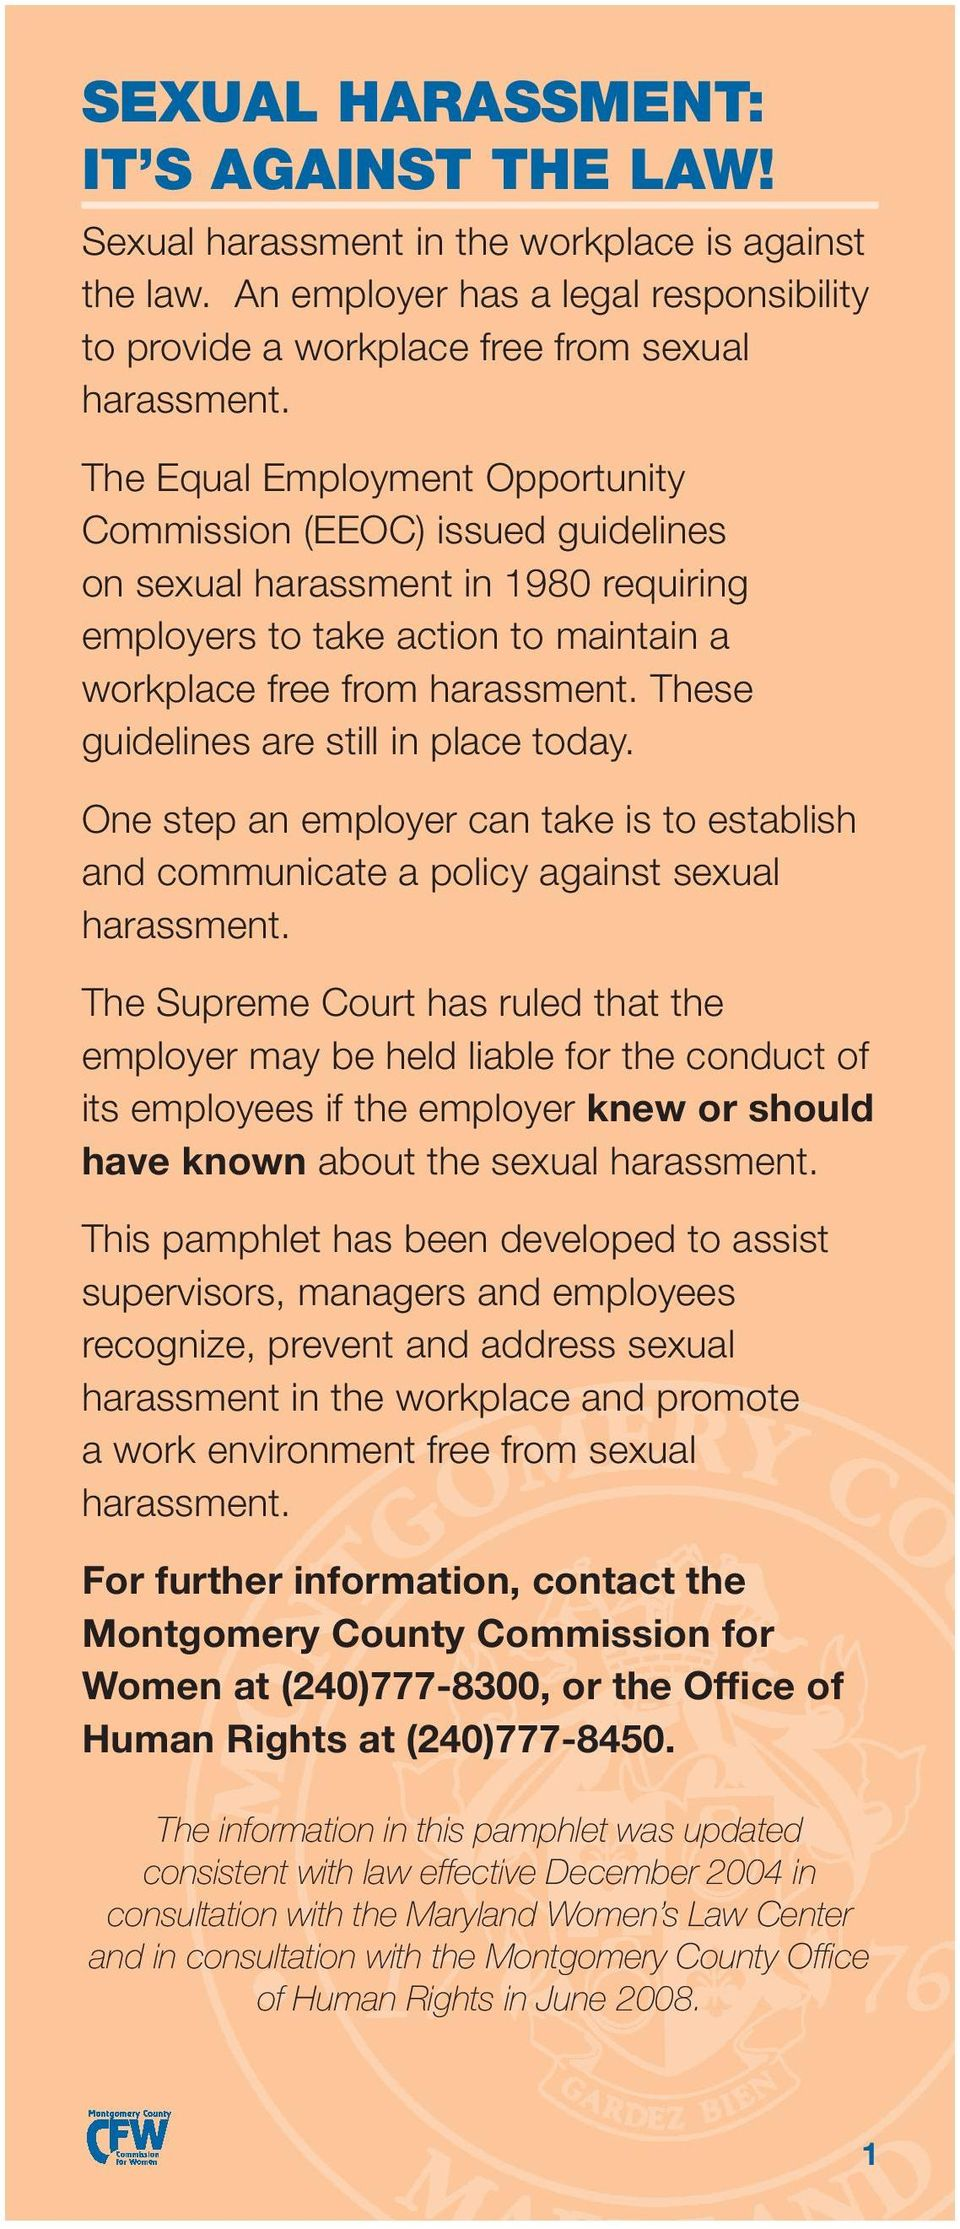 These guidelines are still in place today. One step an employer can take is to establish and communicate a policy against sexual harassment.